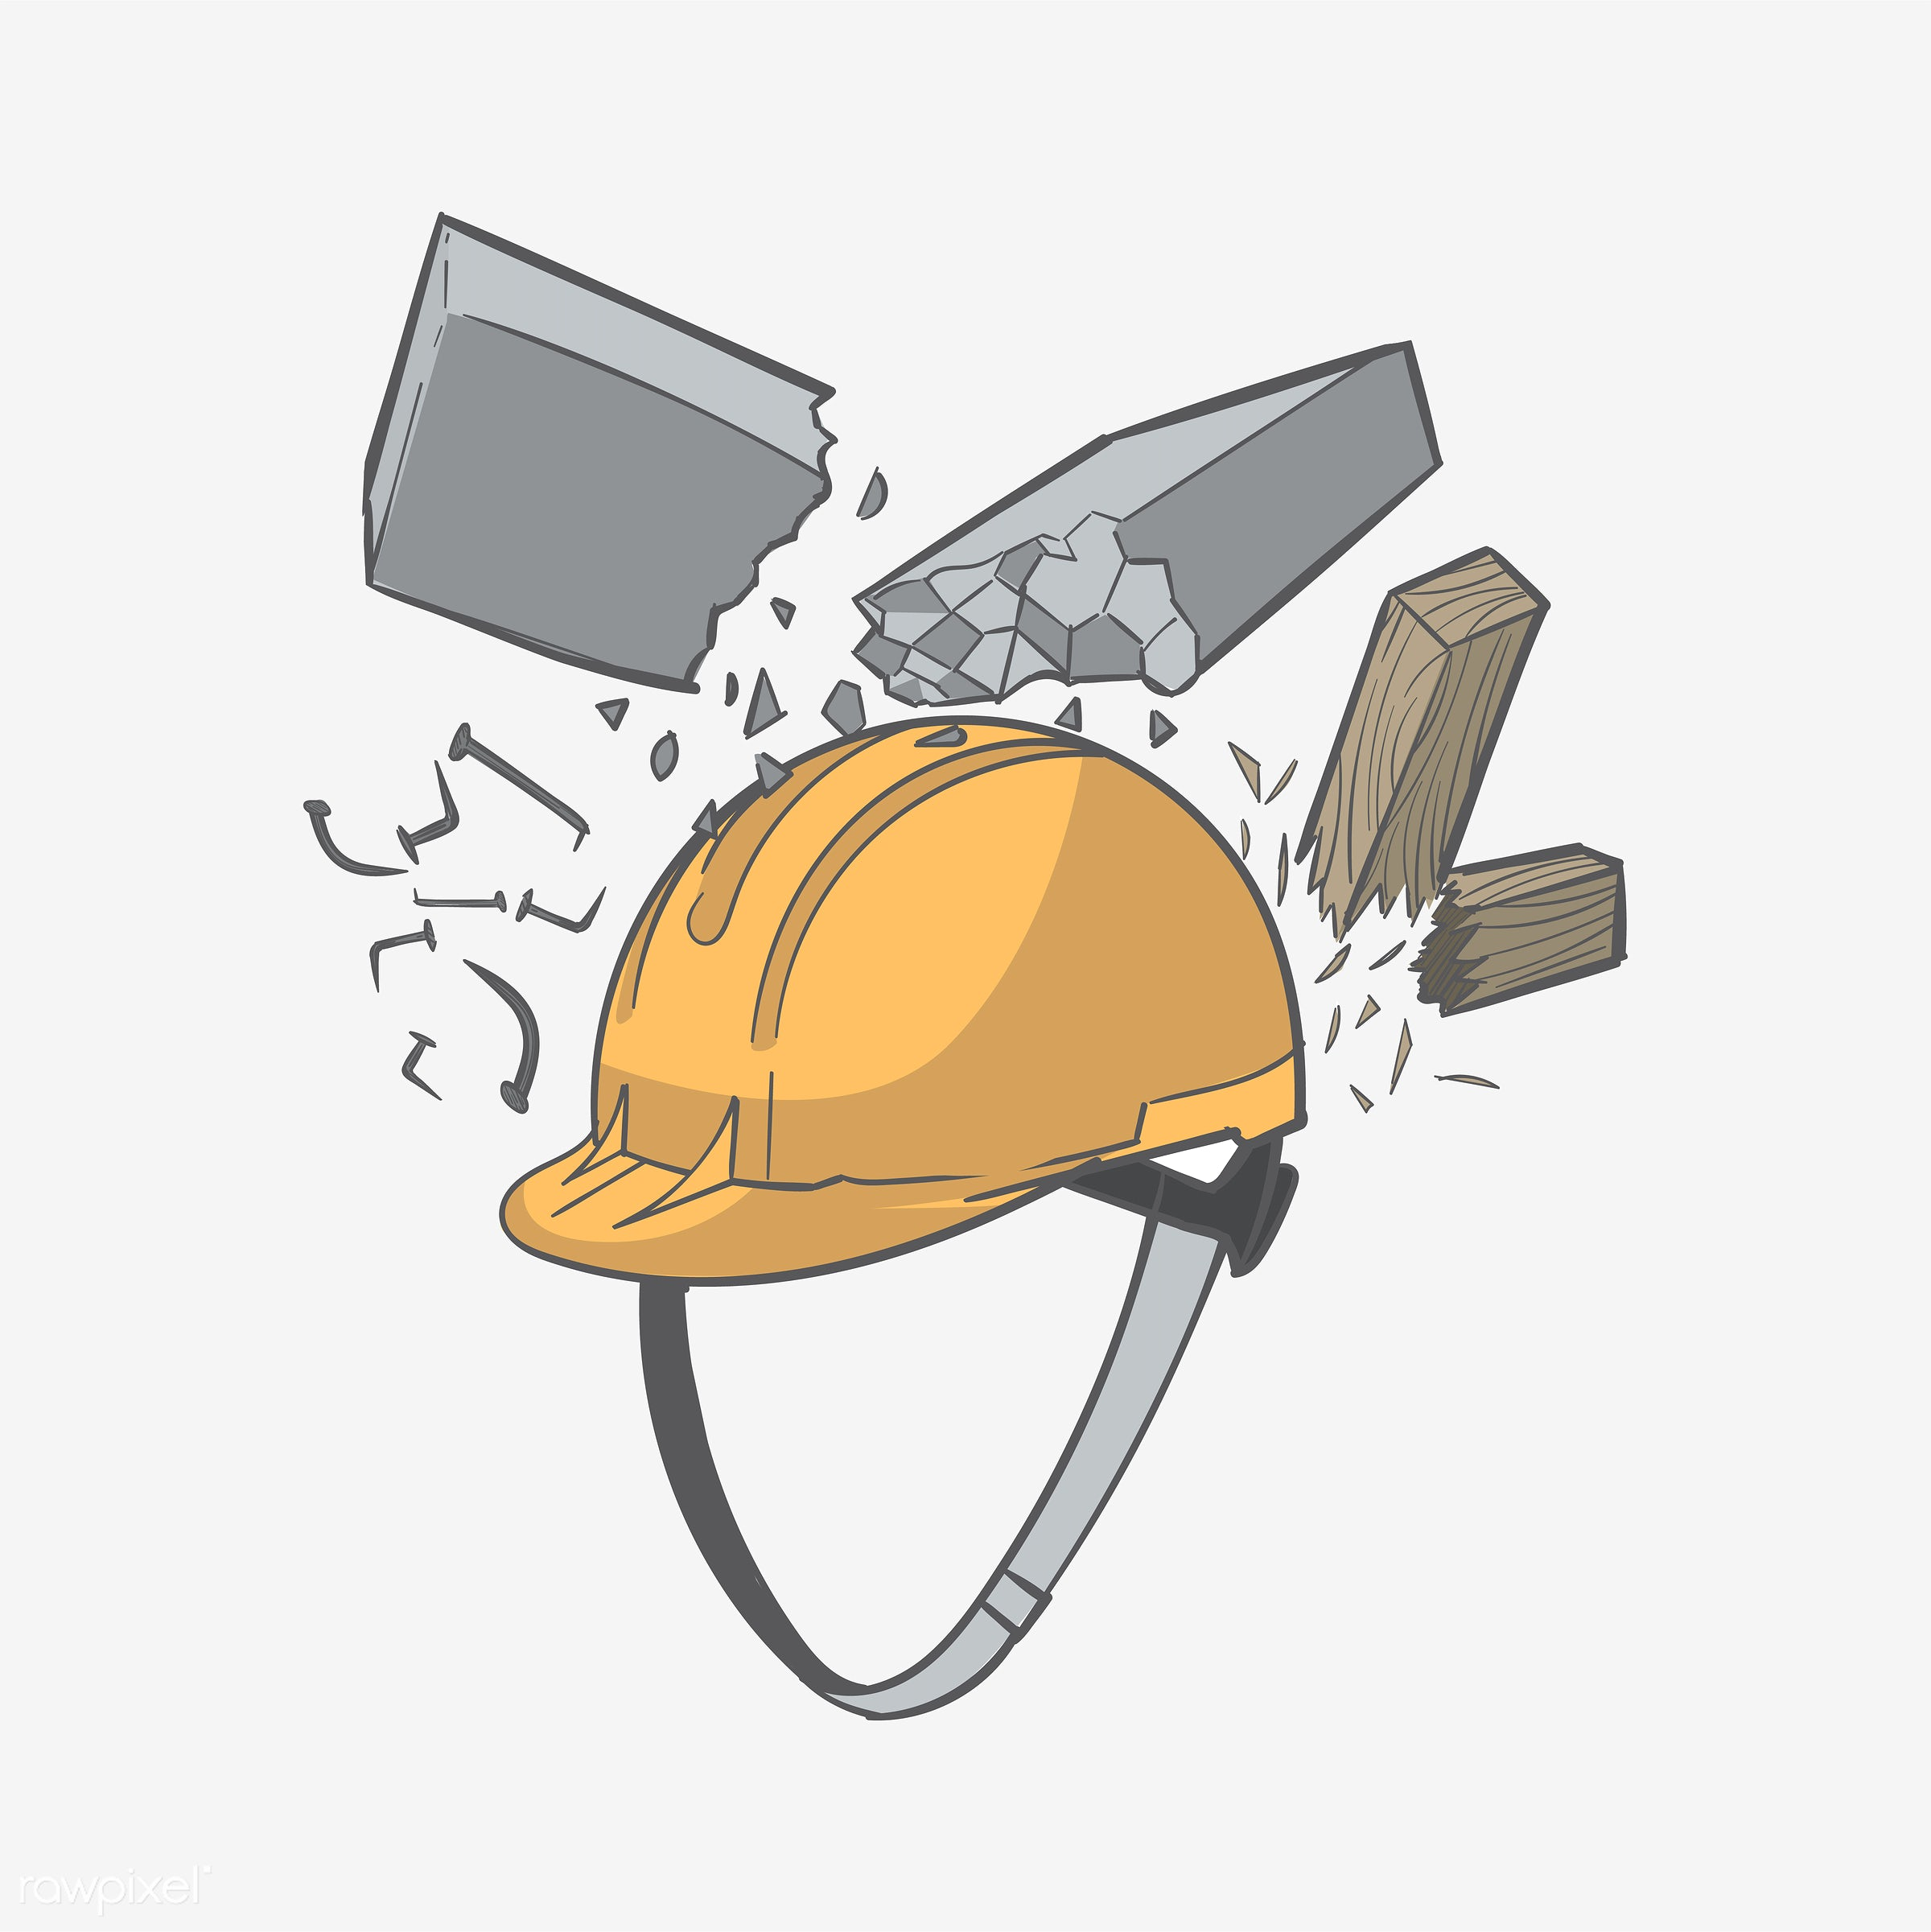 Hand drawing illustration of safety concept - construction, art, artwork, business, creative, creativity, design, draw,...